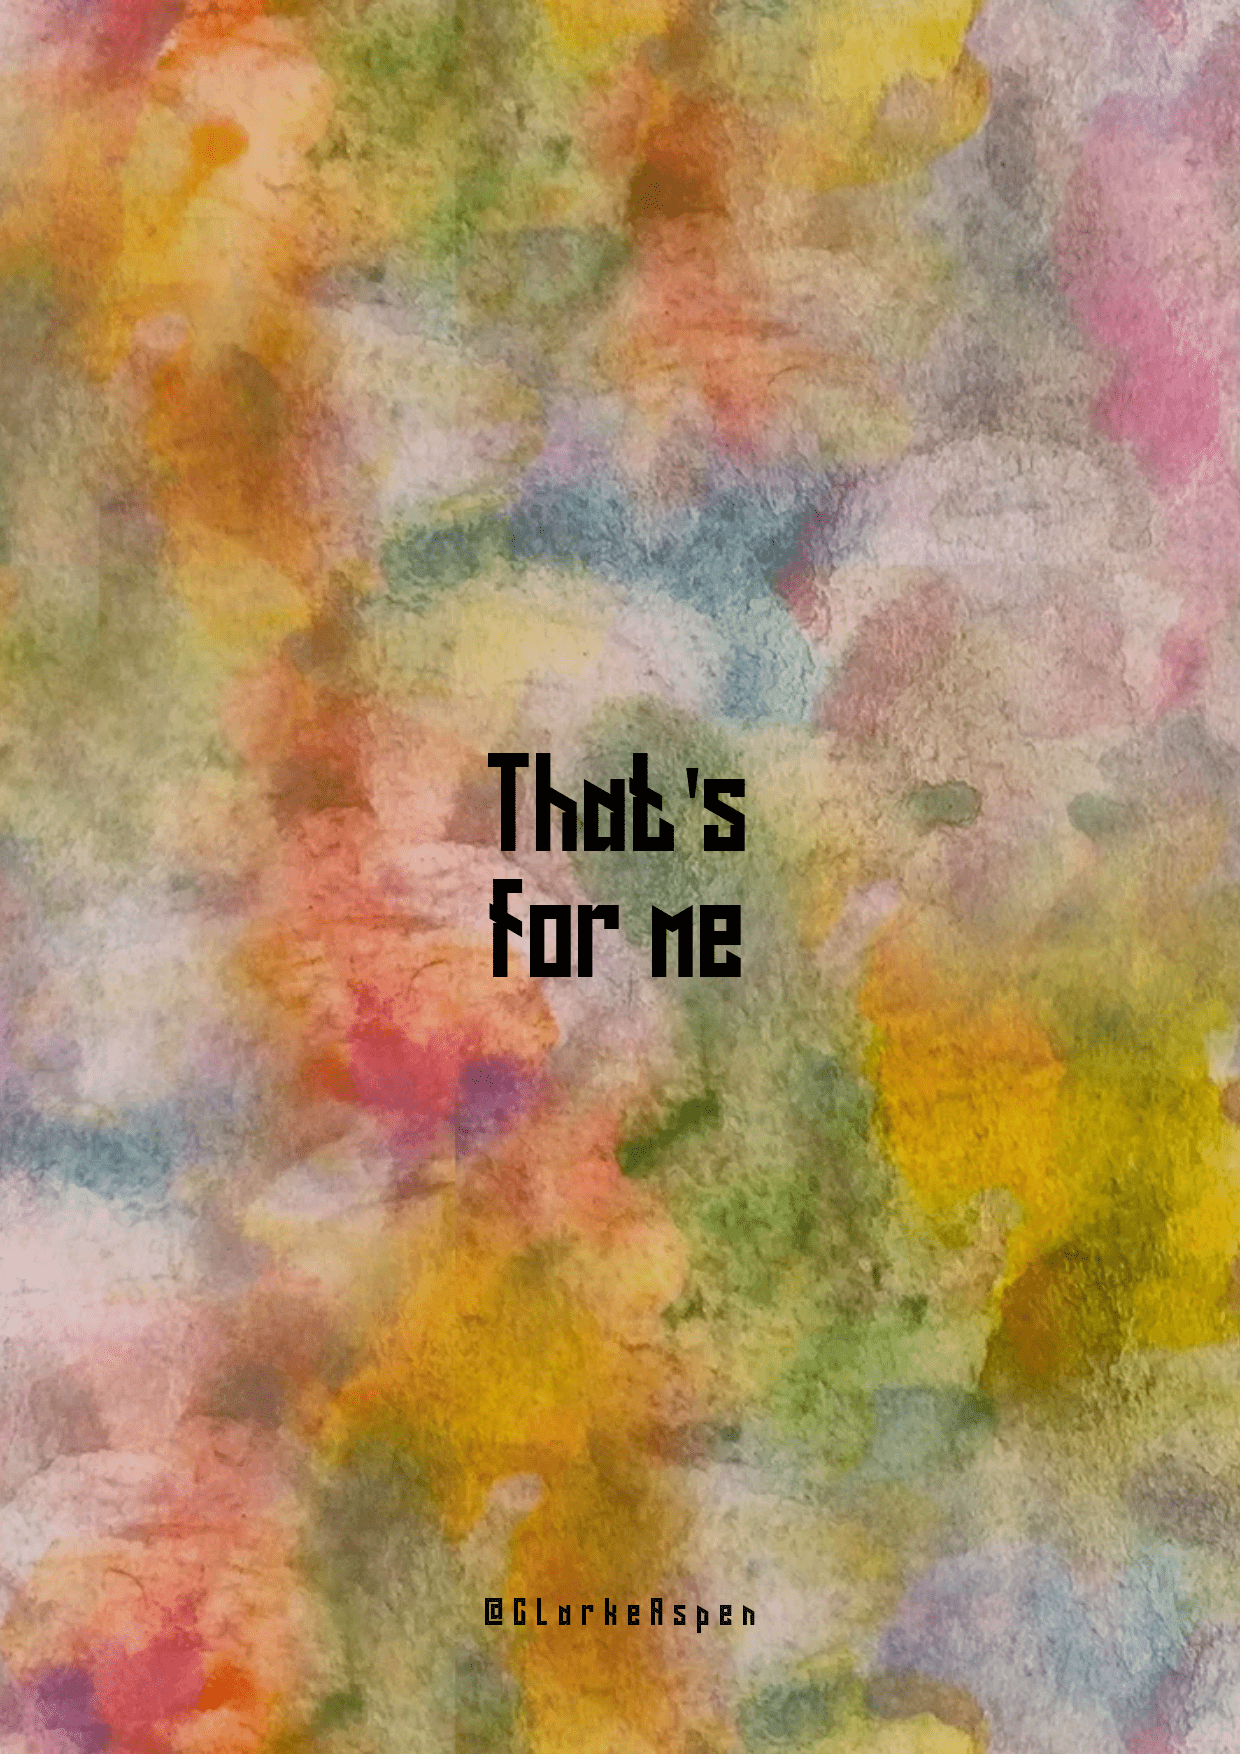 Painting,                Watercolor,                Paint,                Yellow,                Text,                Sky,                Art,                Modern,                Acrylic,                Artwork,                Petal,                Texture,                Impressionist,                 Free Image